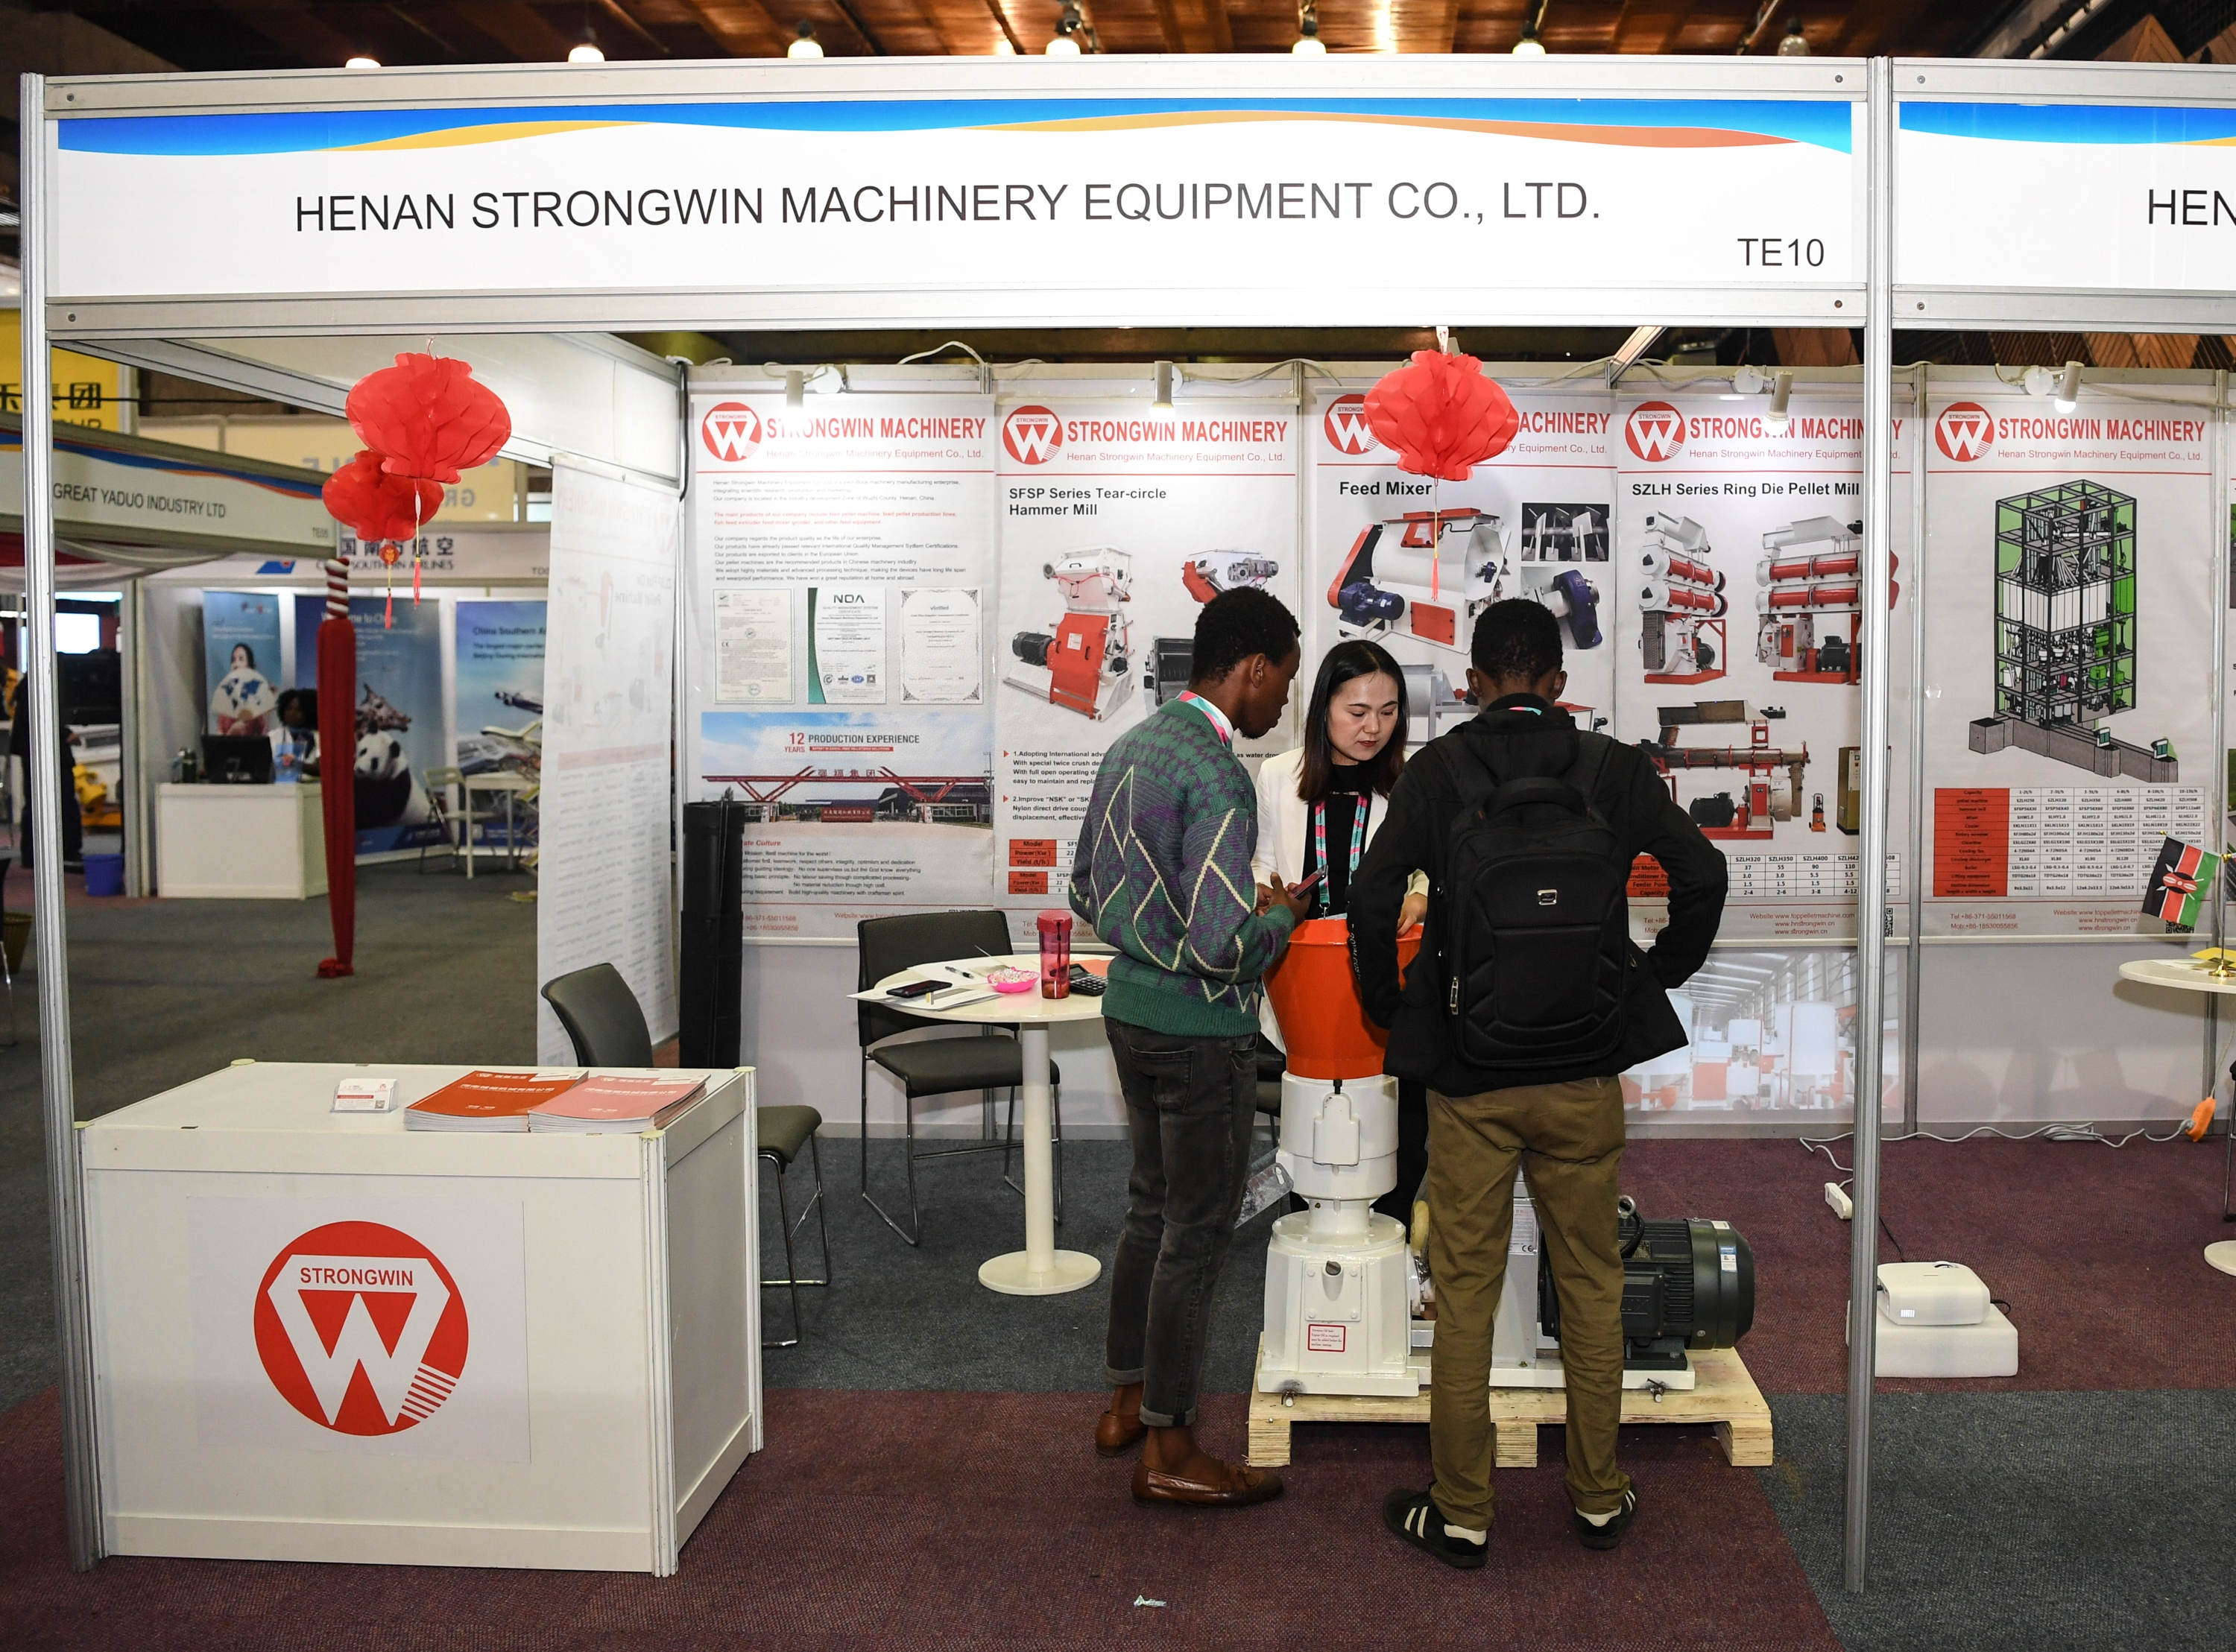 China expo will help alleviate unemployment in Kenya